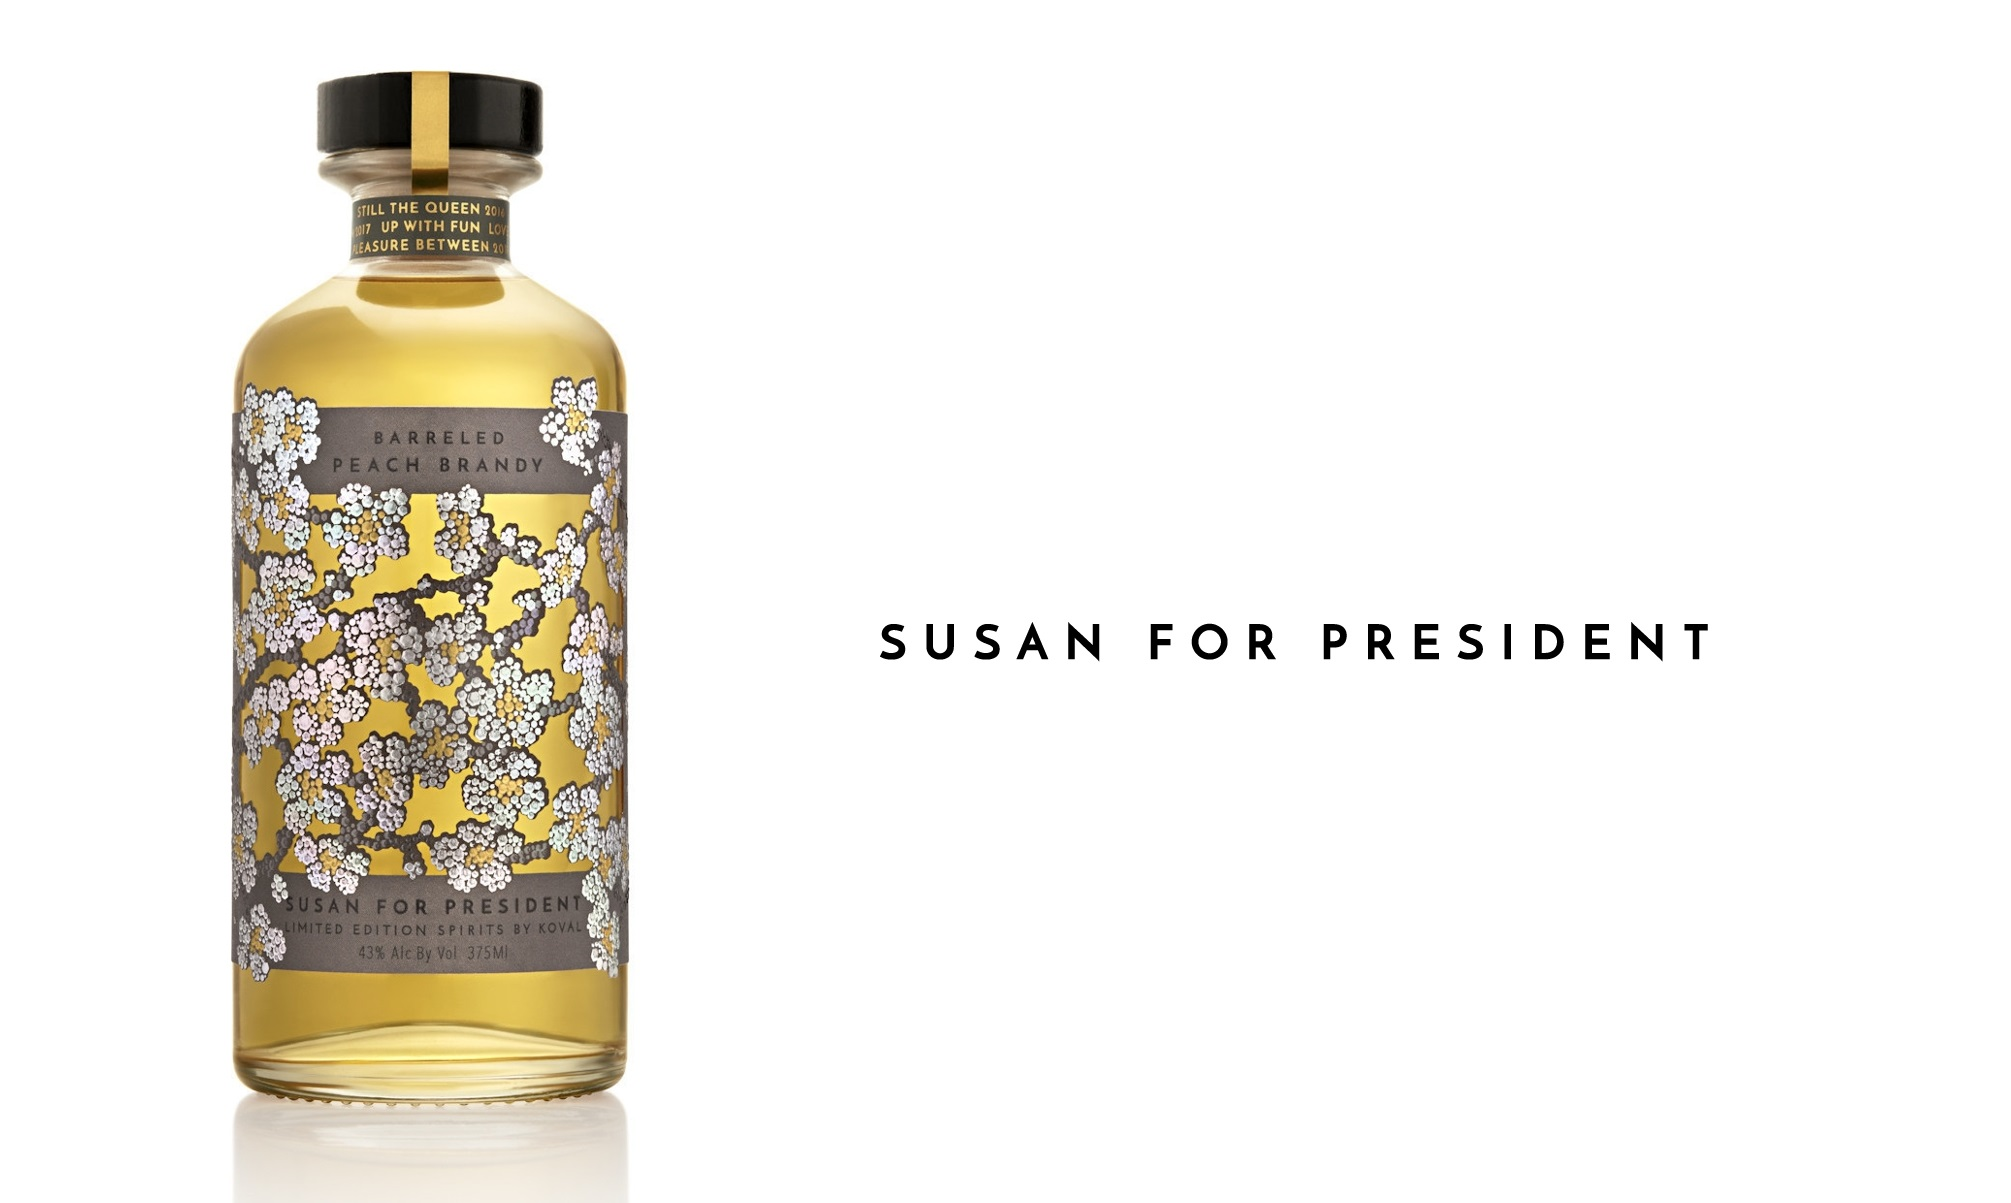 Susan For President - Innovative Limited Edition Spirit